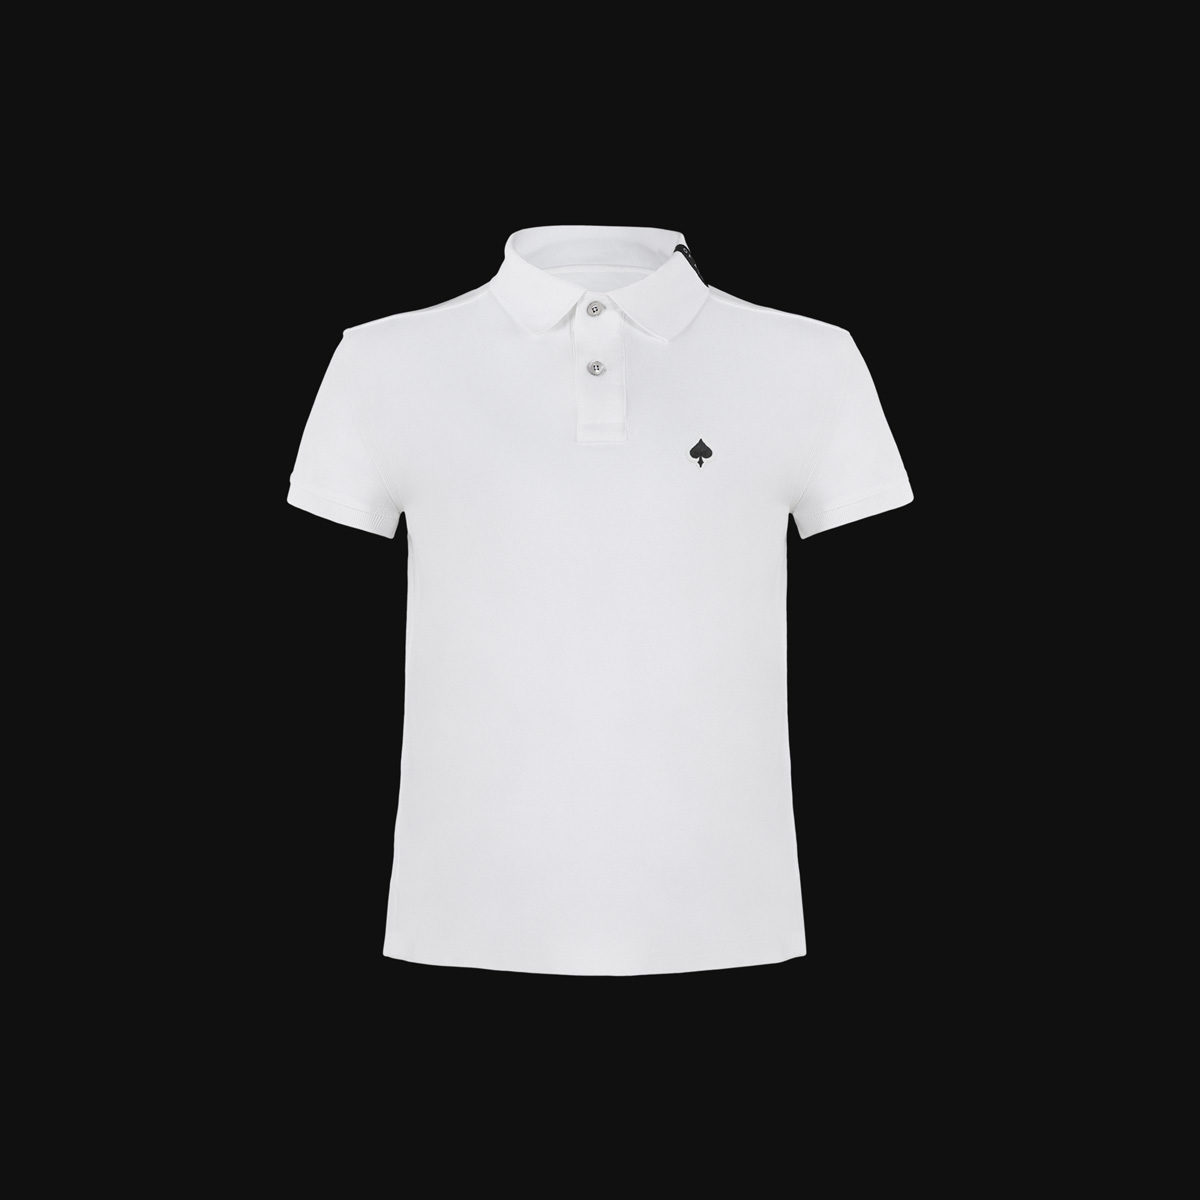 The White Ace polo for man